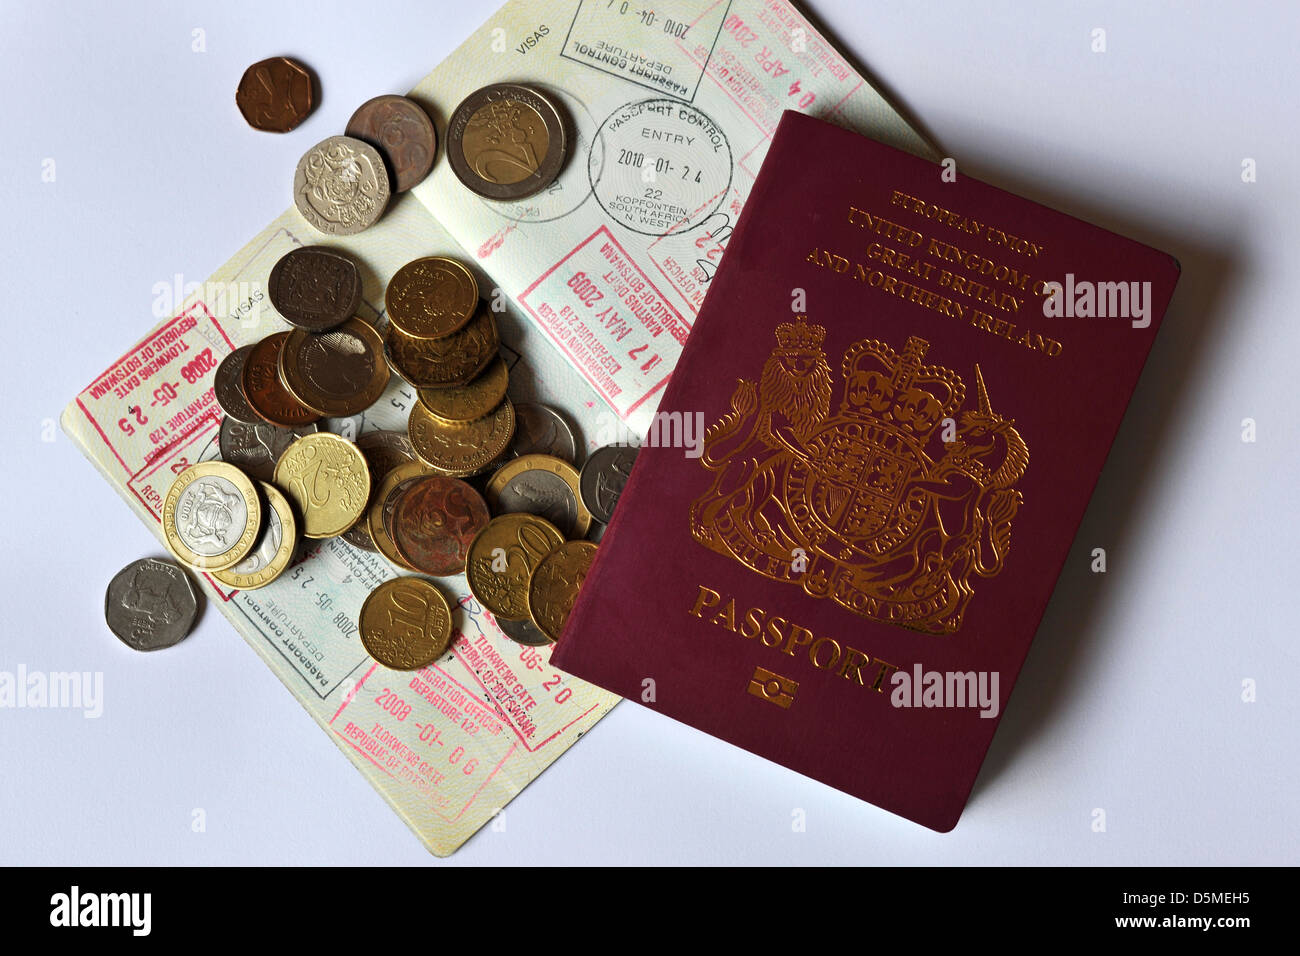 The front cover of a British Passport on top of a fully stamped Visa page covered in coins. - Stock Image